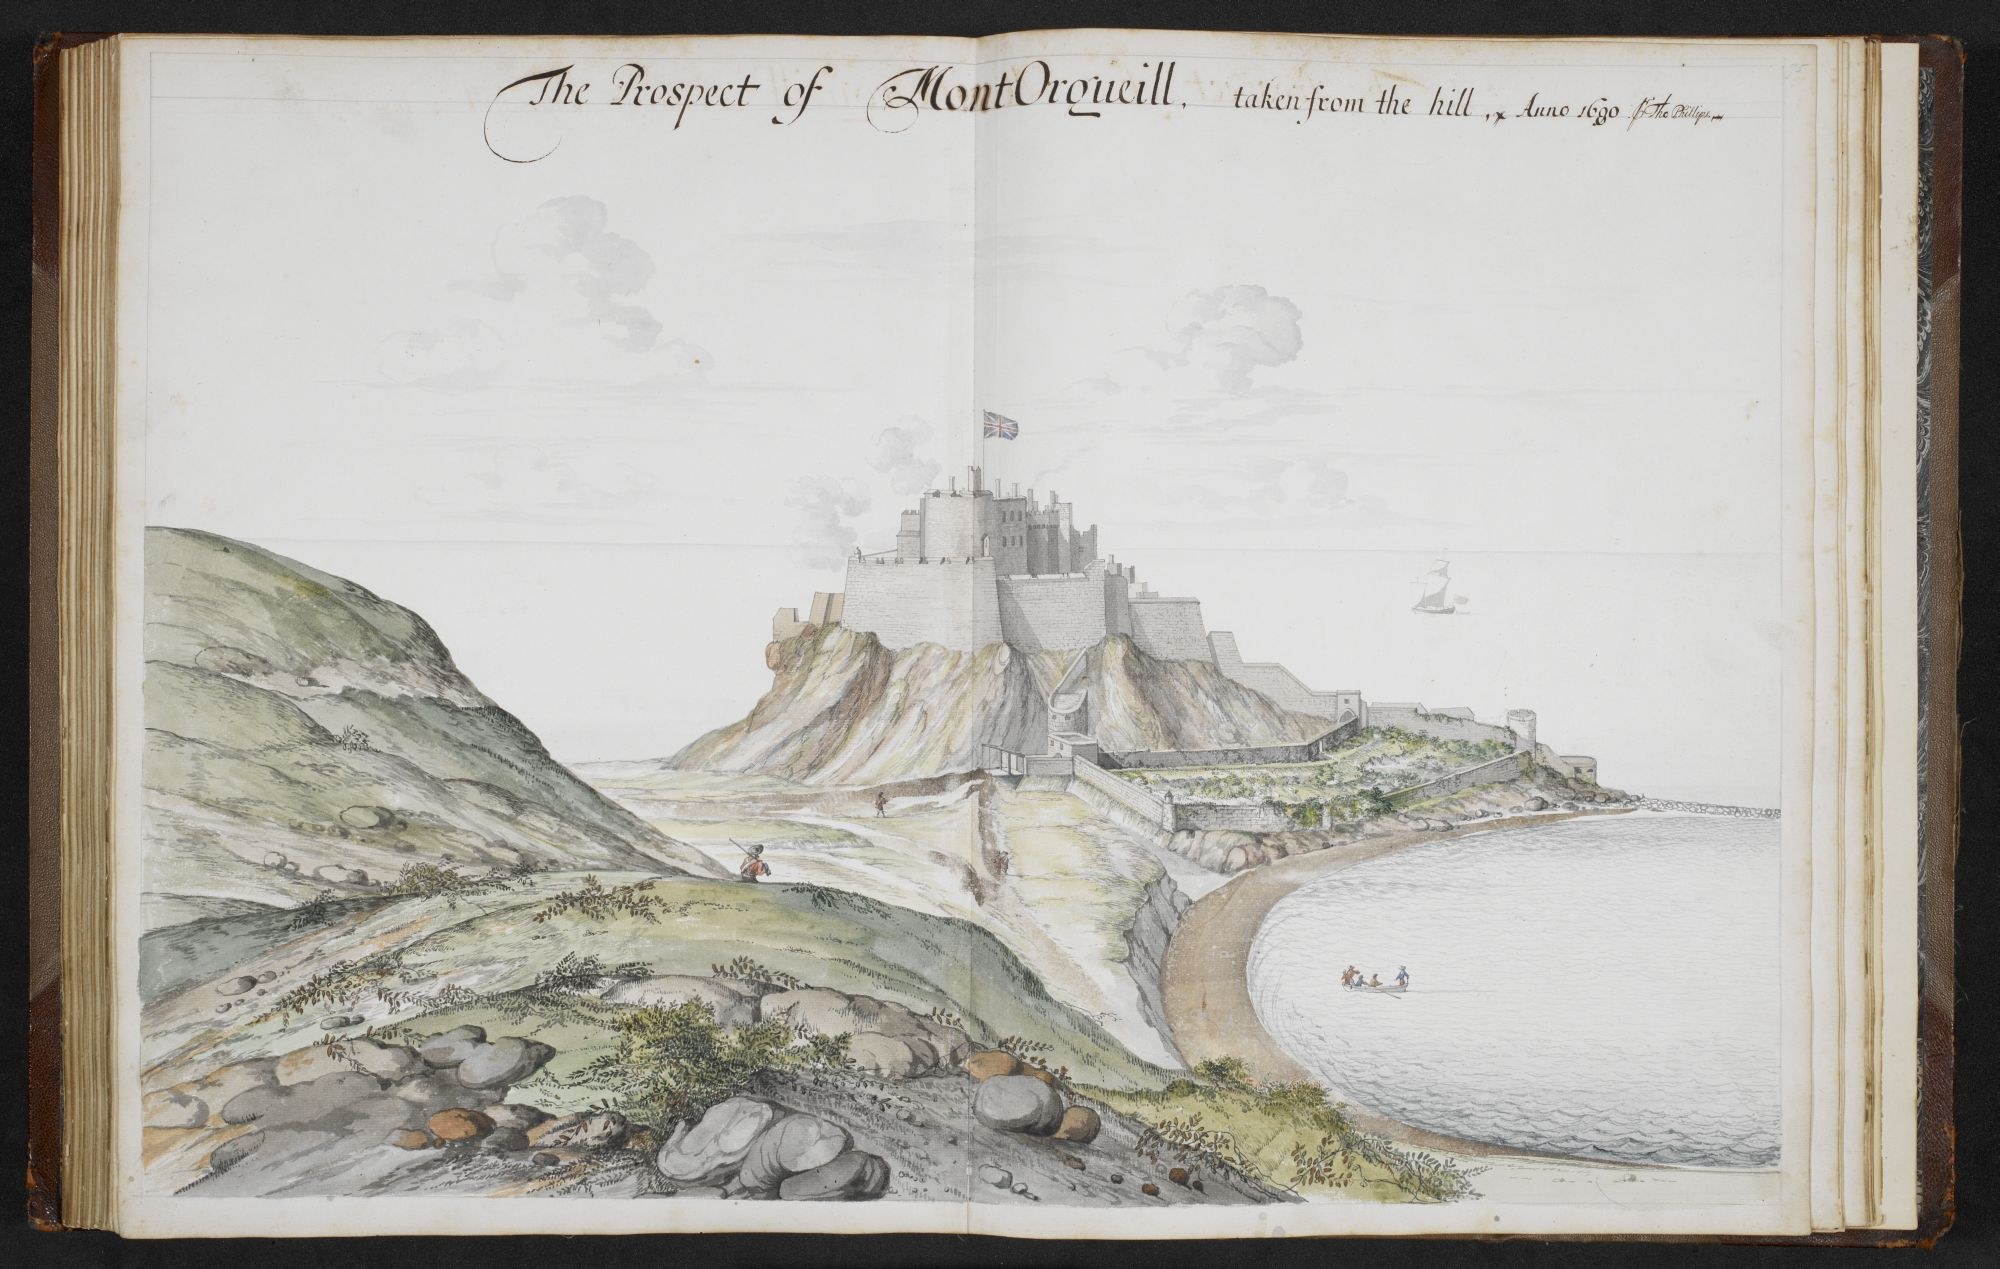 A watercolour view of Mont Orgueil by Thomas Phillips.